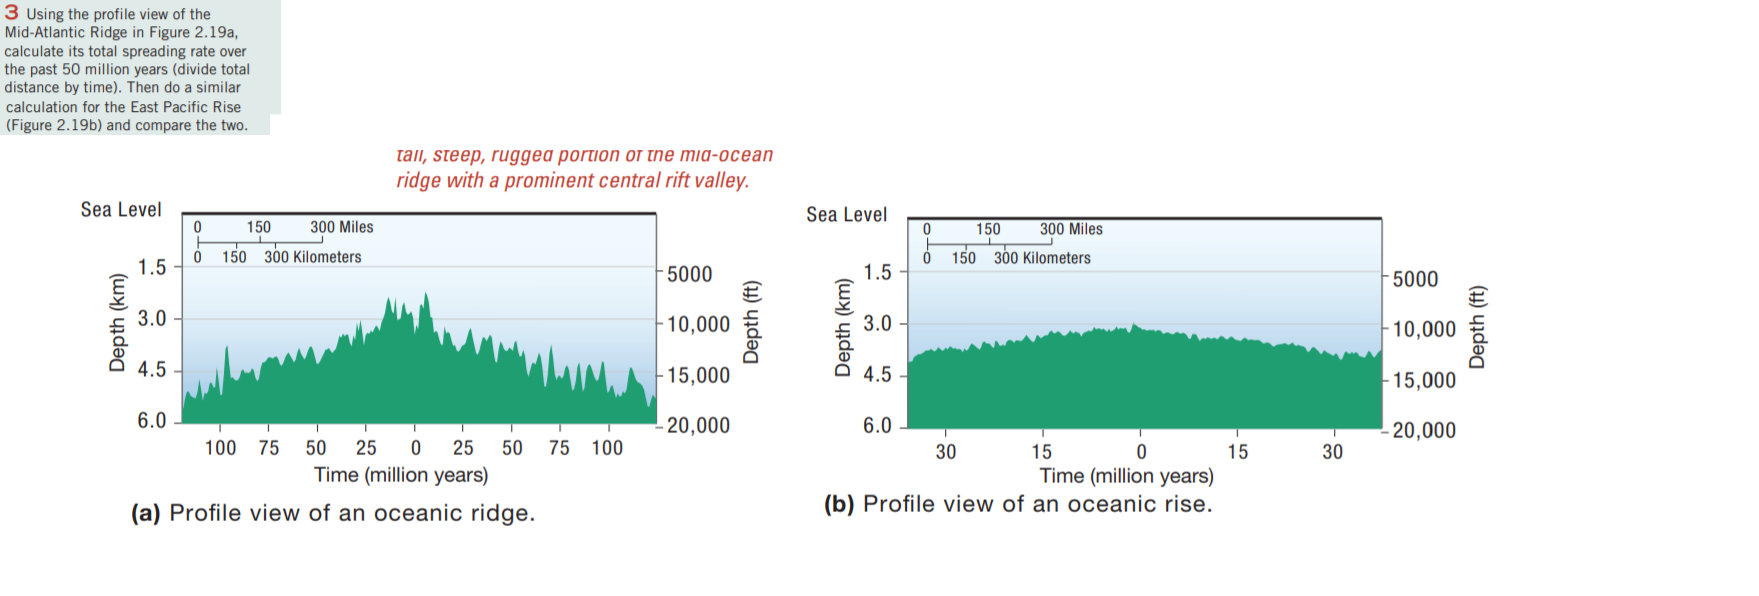 3 Using the profile view of the Mid-Atlantic Ridge in Figure 2.19a, calculate its total spreading rate over the past 50 milli